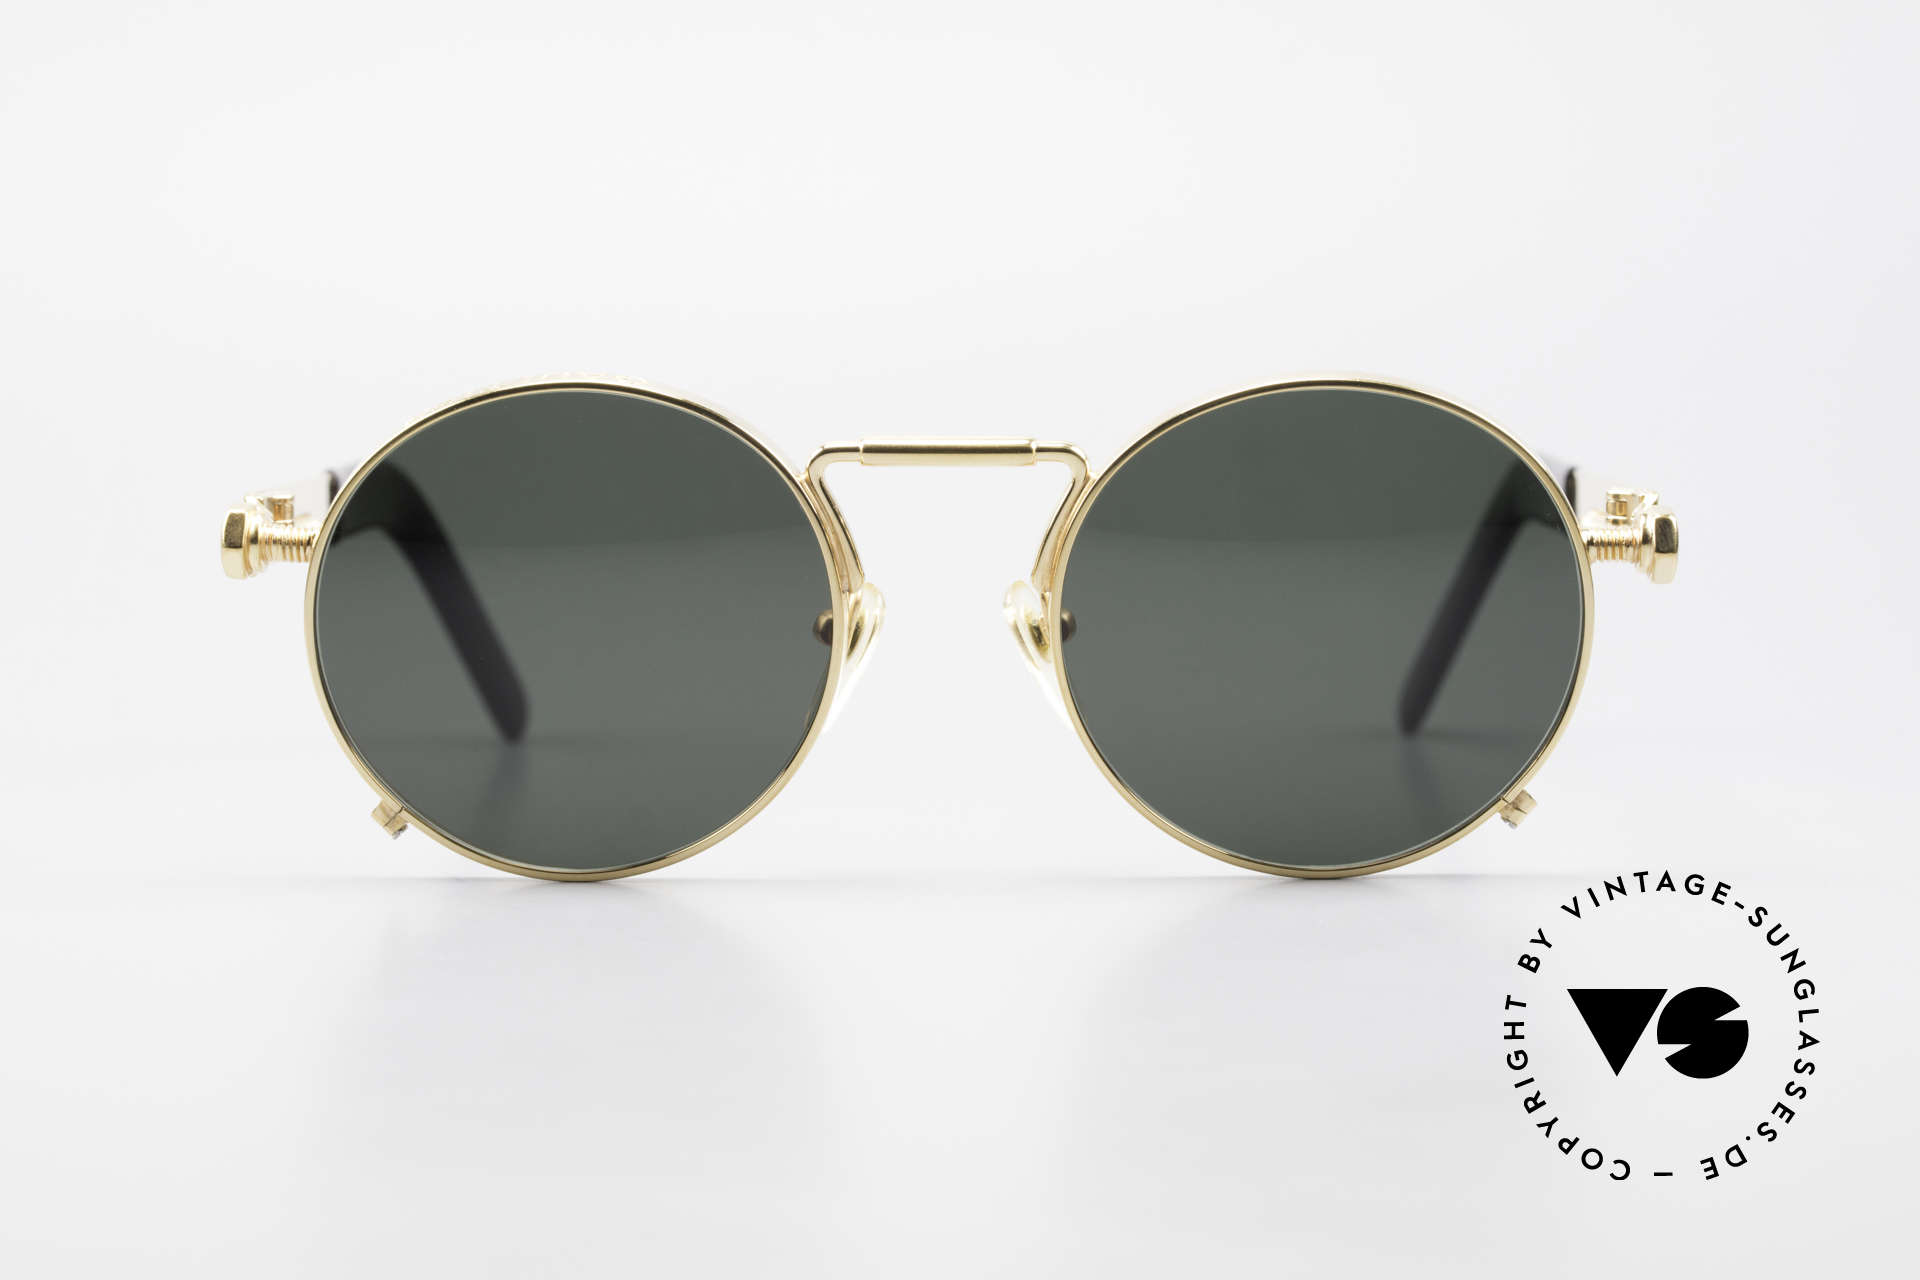 Jean Paul Gaultier 56-8171 Customized Chrome Gold, 1st model of the Gaultier eyewear collection from 1991, Made for Men and Women